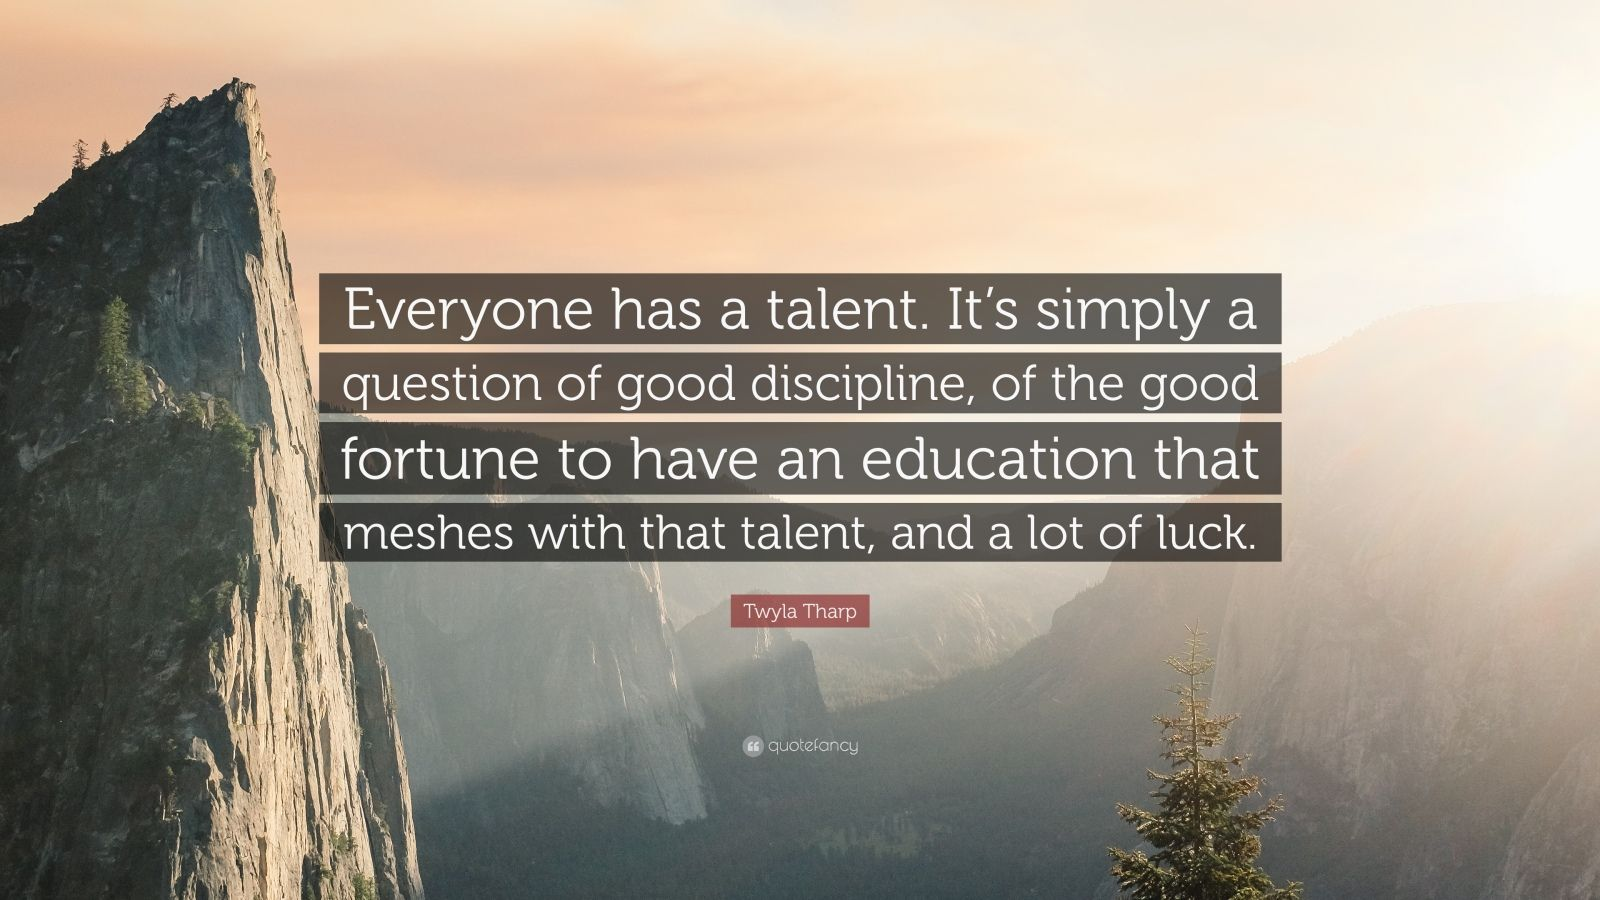 """Twyla Tharp Quote: """"Everyone has a talent. It's simply a question of good discipline, of the good fortune to have an education that meshes with that talent, and a lot of luck."""""""